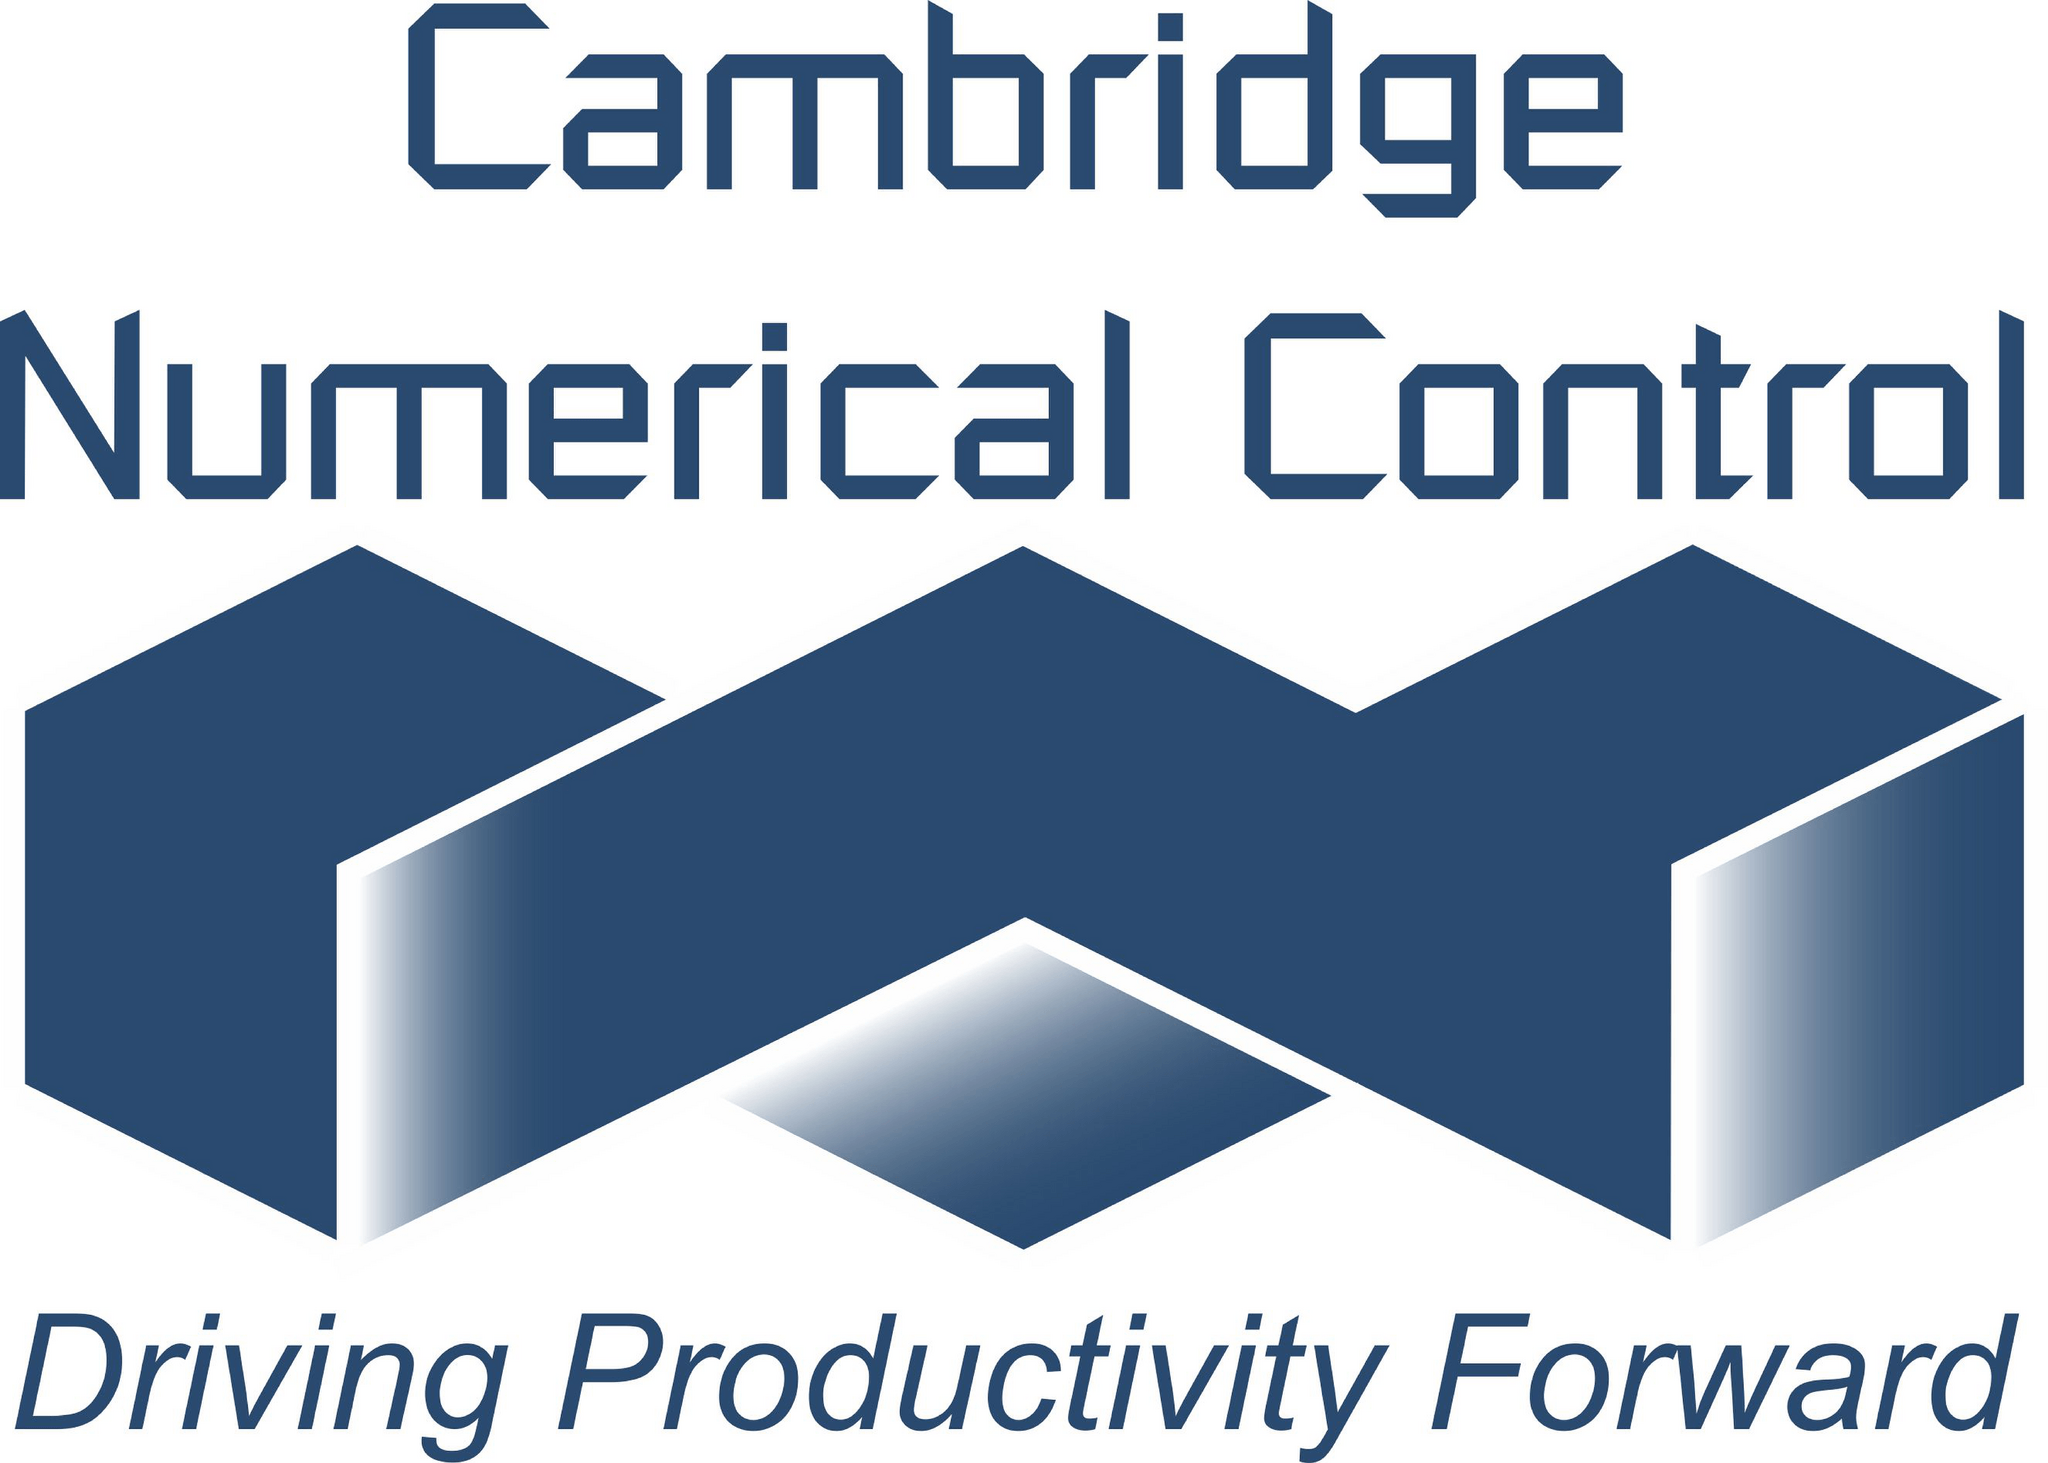 CAMBRIDGE NUMERICAL CONTROL